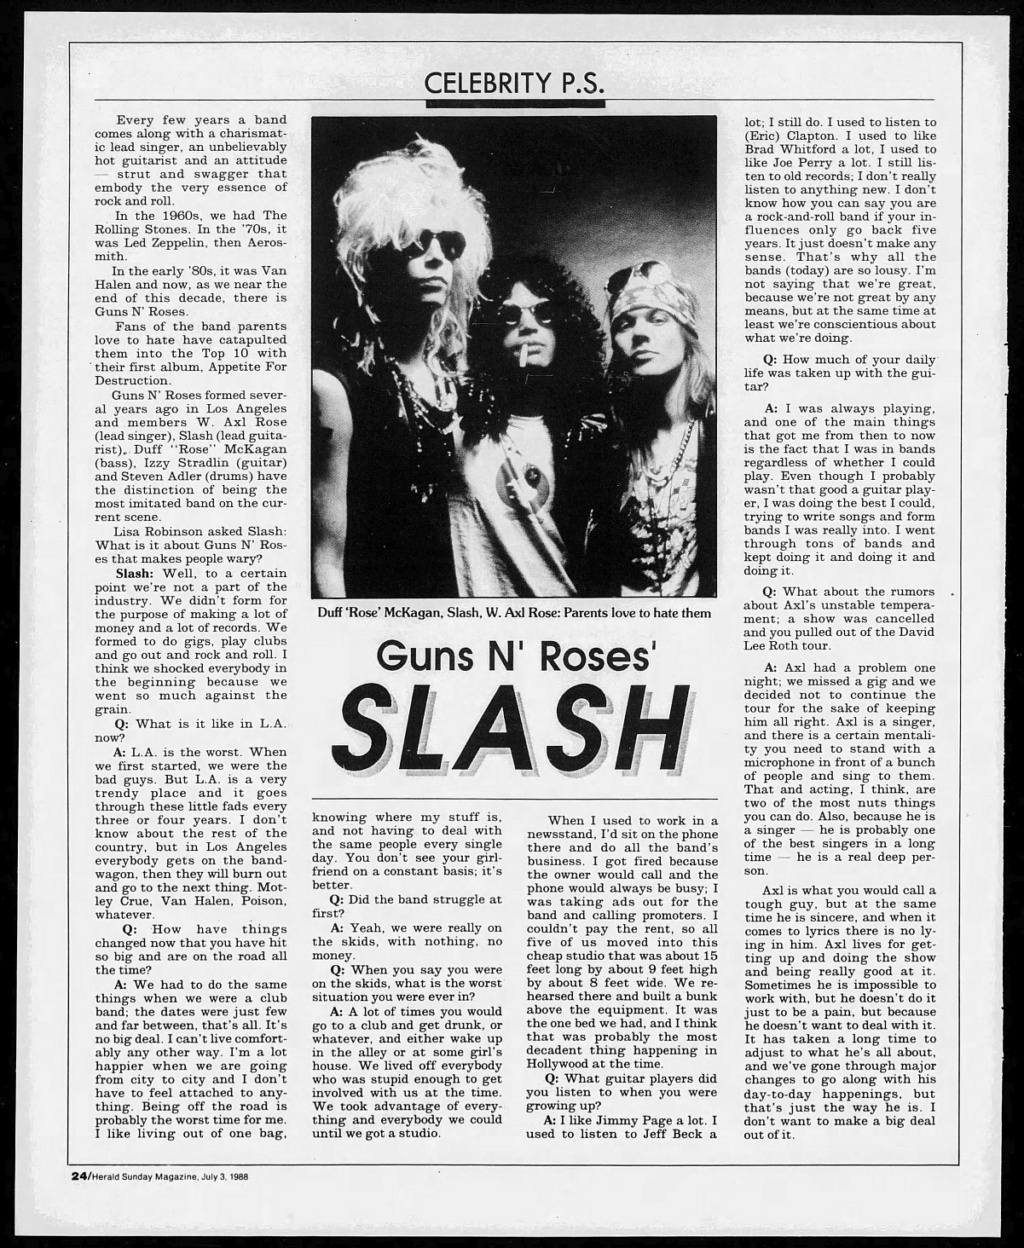 1988.07.03 - The Calgary Herald - Guns N' Roses' Slash 1988_010